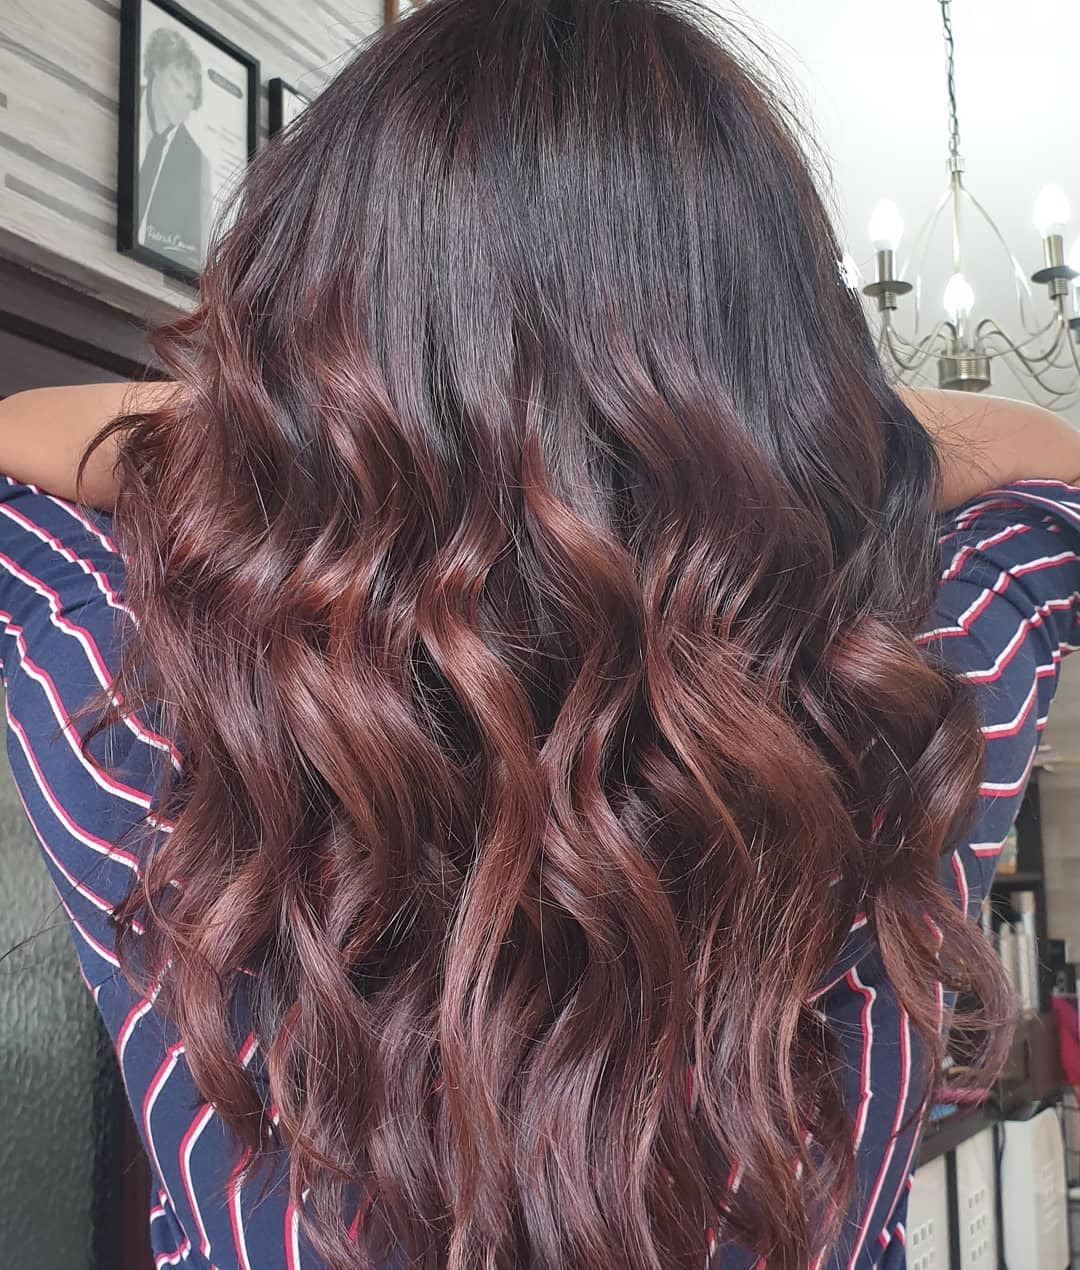 Woman with curly dark brunette hair with mahogany highlights